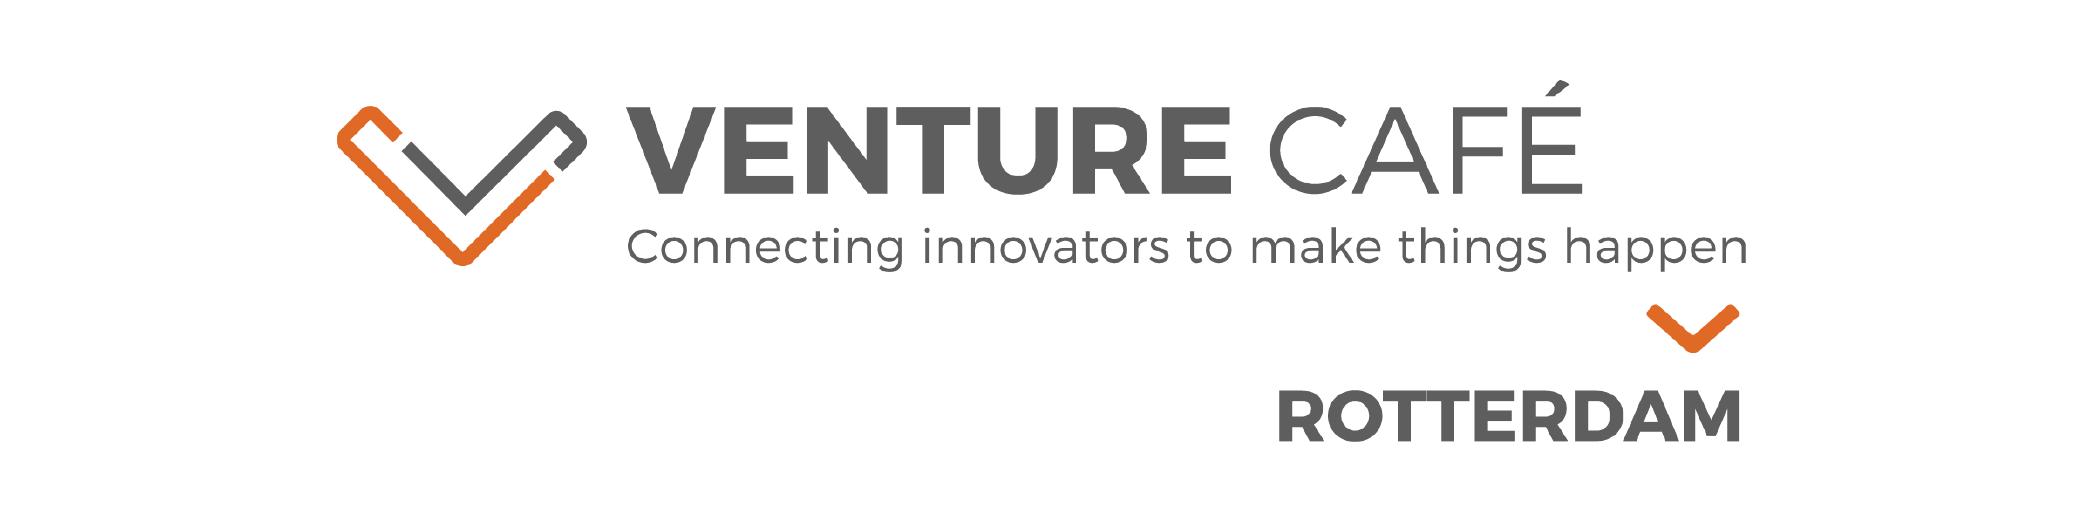 The Venture Café Foundation The Netherlands is CIC's non-profit sister organisation. Its mission is to strengthen the innovation ecosystem, connecting innovators to make things happen. Every Thursday, innovators gather at Venture Café Rotterdam's Thursday Gatherings to make impactful connections. -